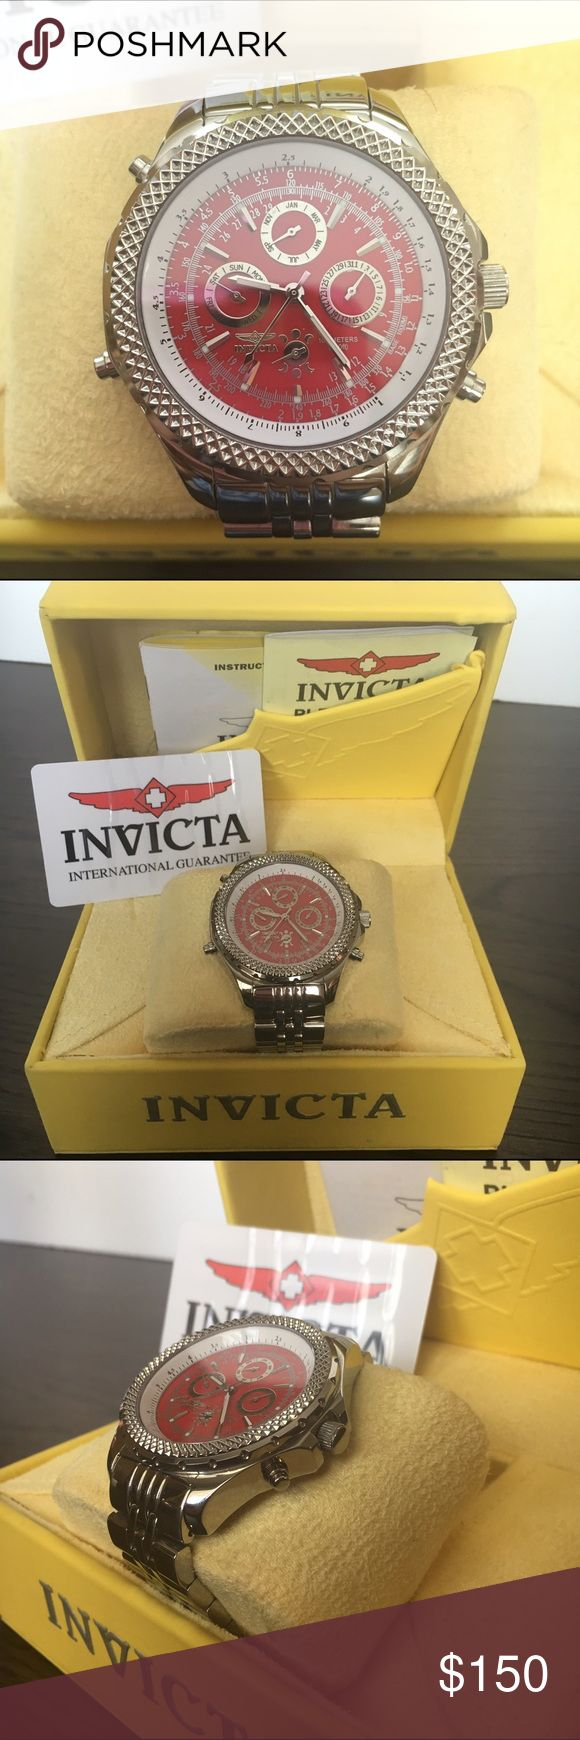 Invicta men's watch Brand new men's invicta watch. No scratches. Box included . Red face with silver . New never used but battery went out so it needs a new battery. Authentic & heavy Invicta Accessories Watches